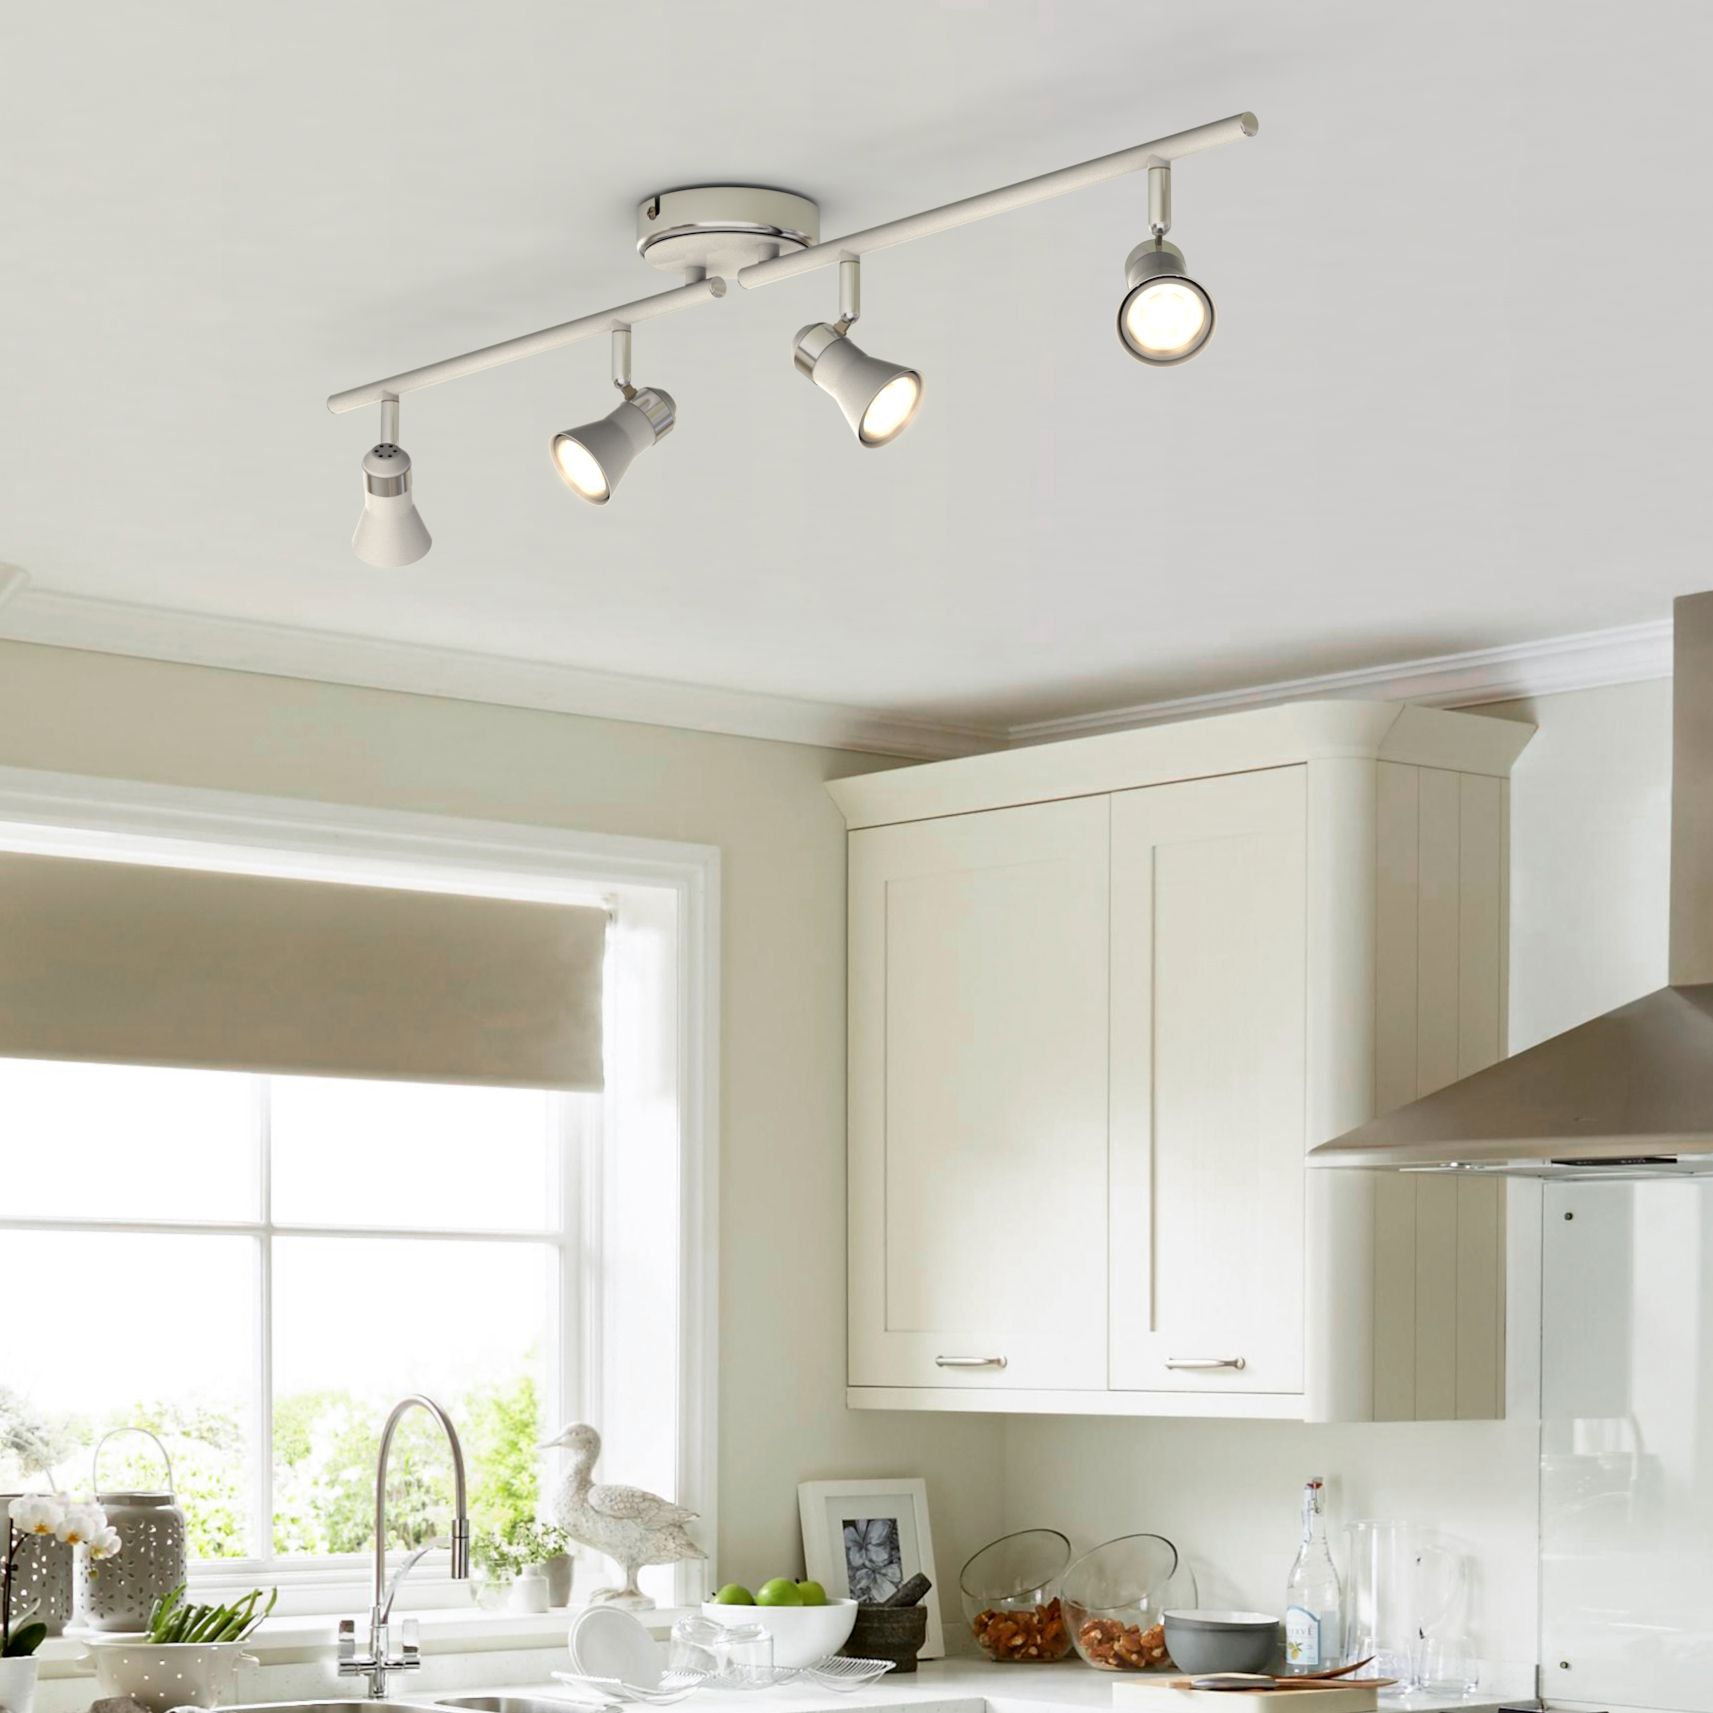 Overhead Kitchen Lighting Ideas: Kitchen Ceiling Lights & Spotlights